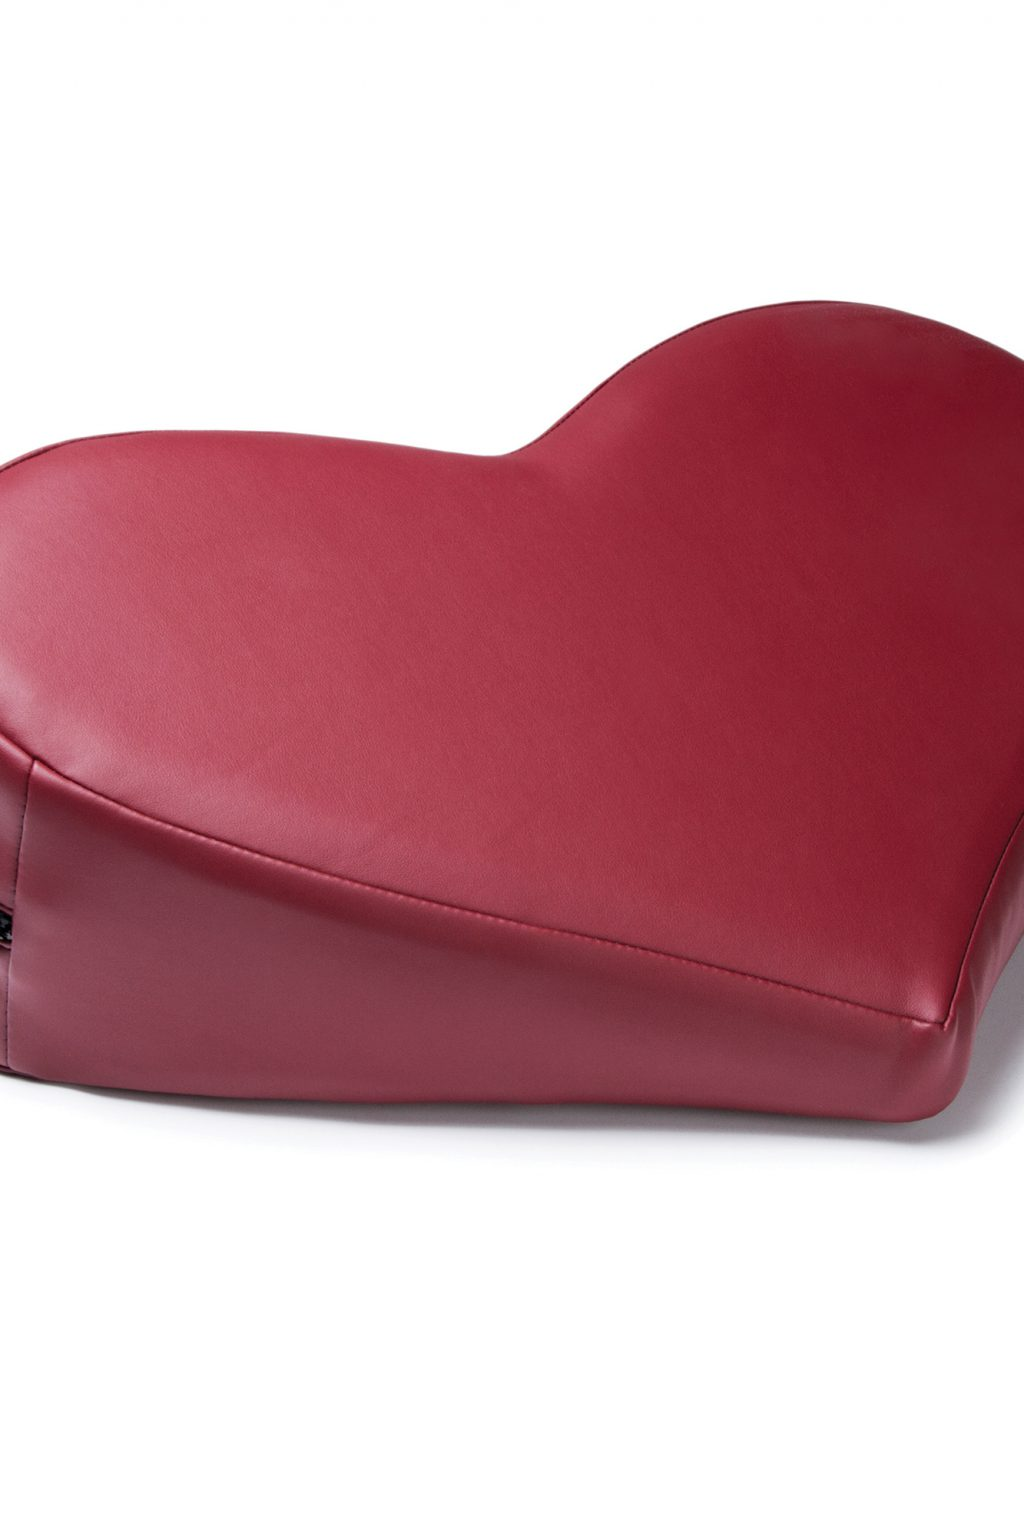 Heart Wedge Sex Pillow - Faux Leather